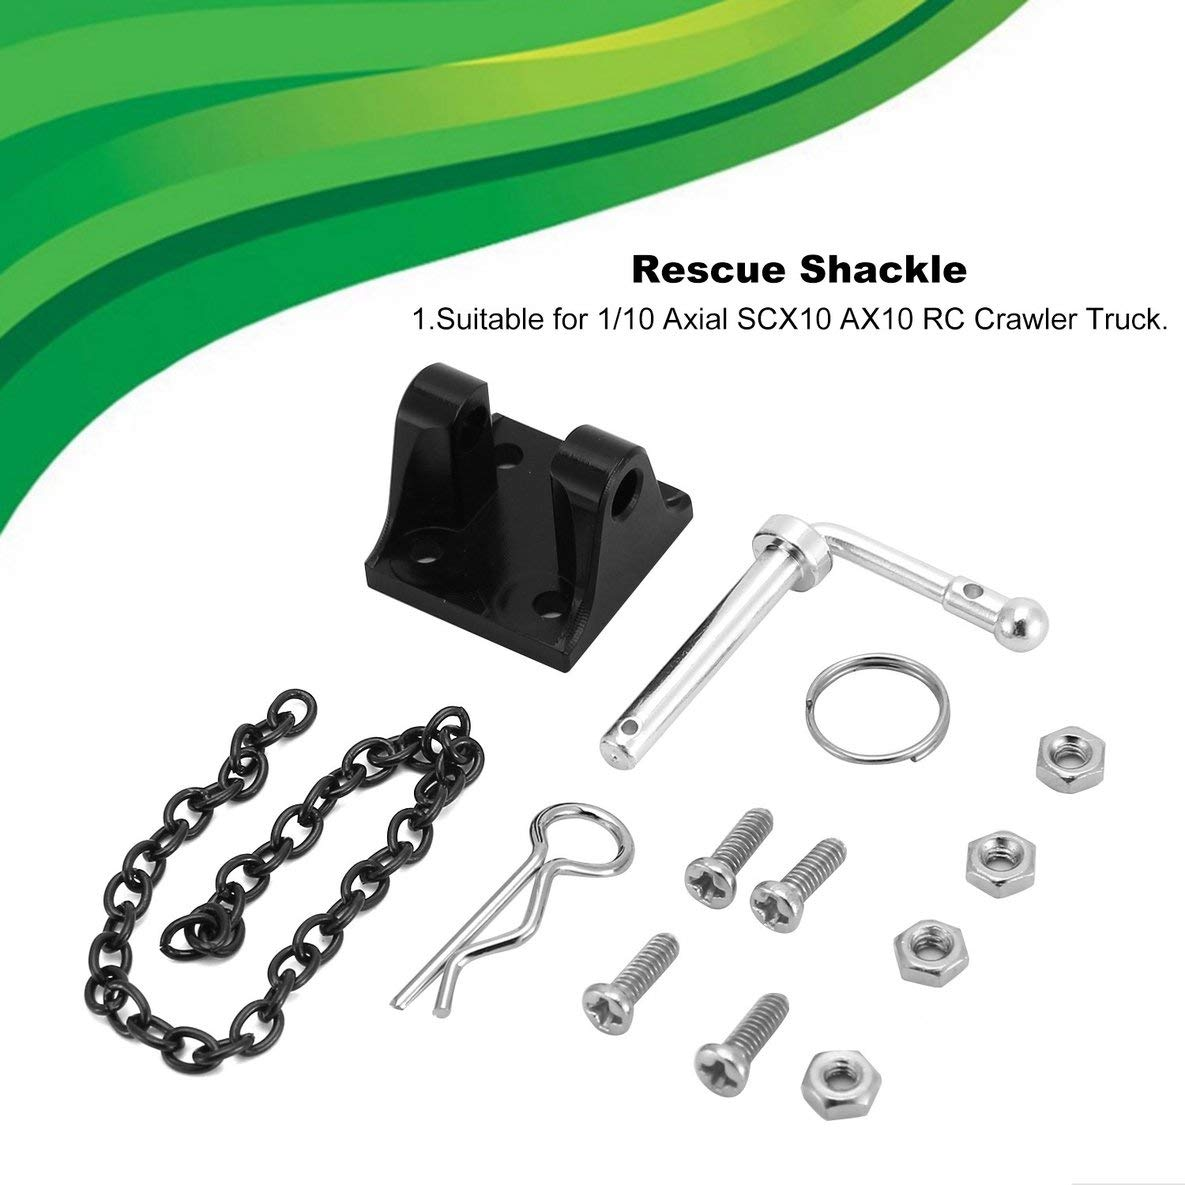 Noradtjcca Simulation 1//10 Hitch Tow Shackles Trailer Hook Set Metal Climbing Rope Chain Spare Parts RC Crawler Model Accessories